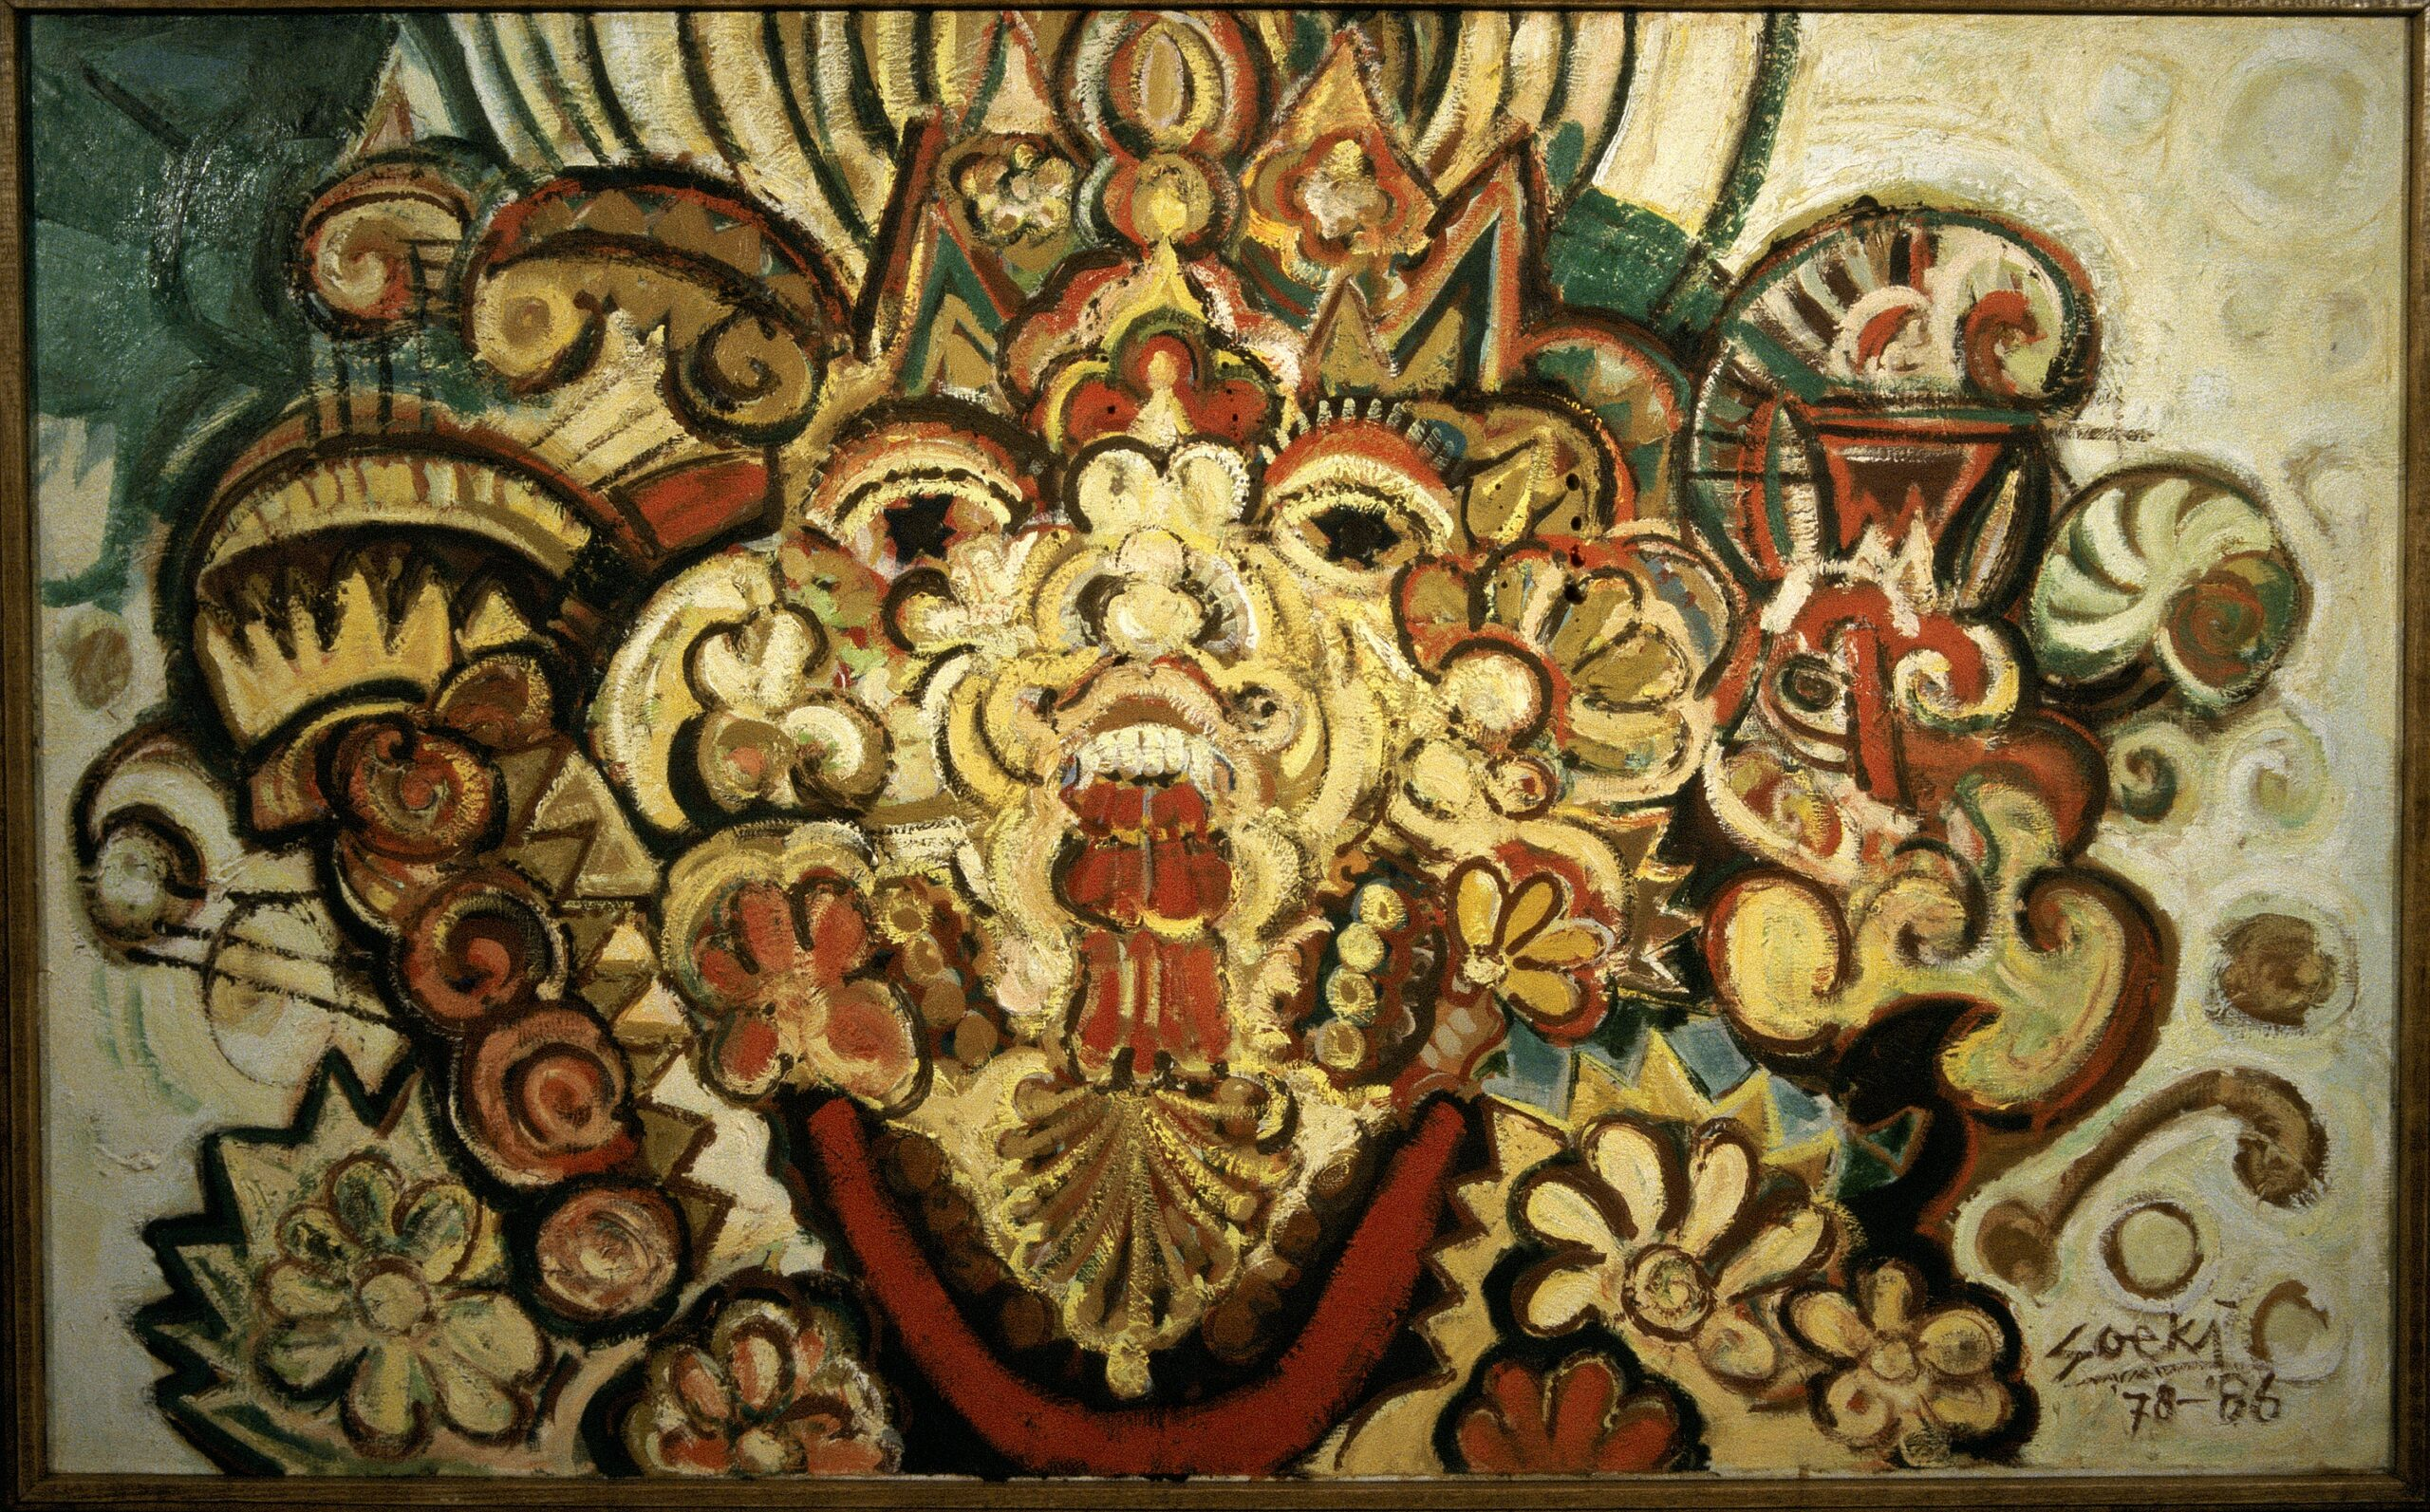 Soeki Irodikromo (Surinamese, 1945-), Untitled, 1986, oil on canvas, OAS AMA   Art Museum of the Americas Collection. Gift of the Government of Suriname.